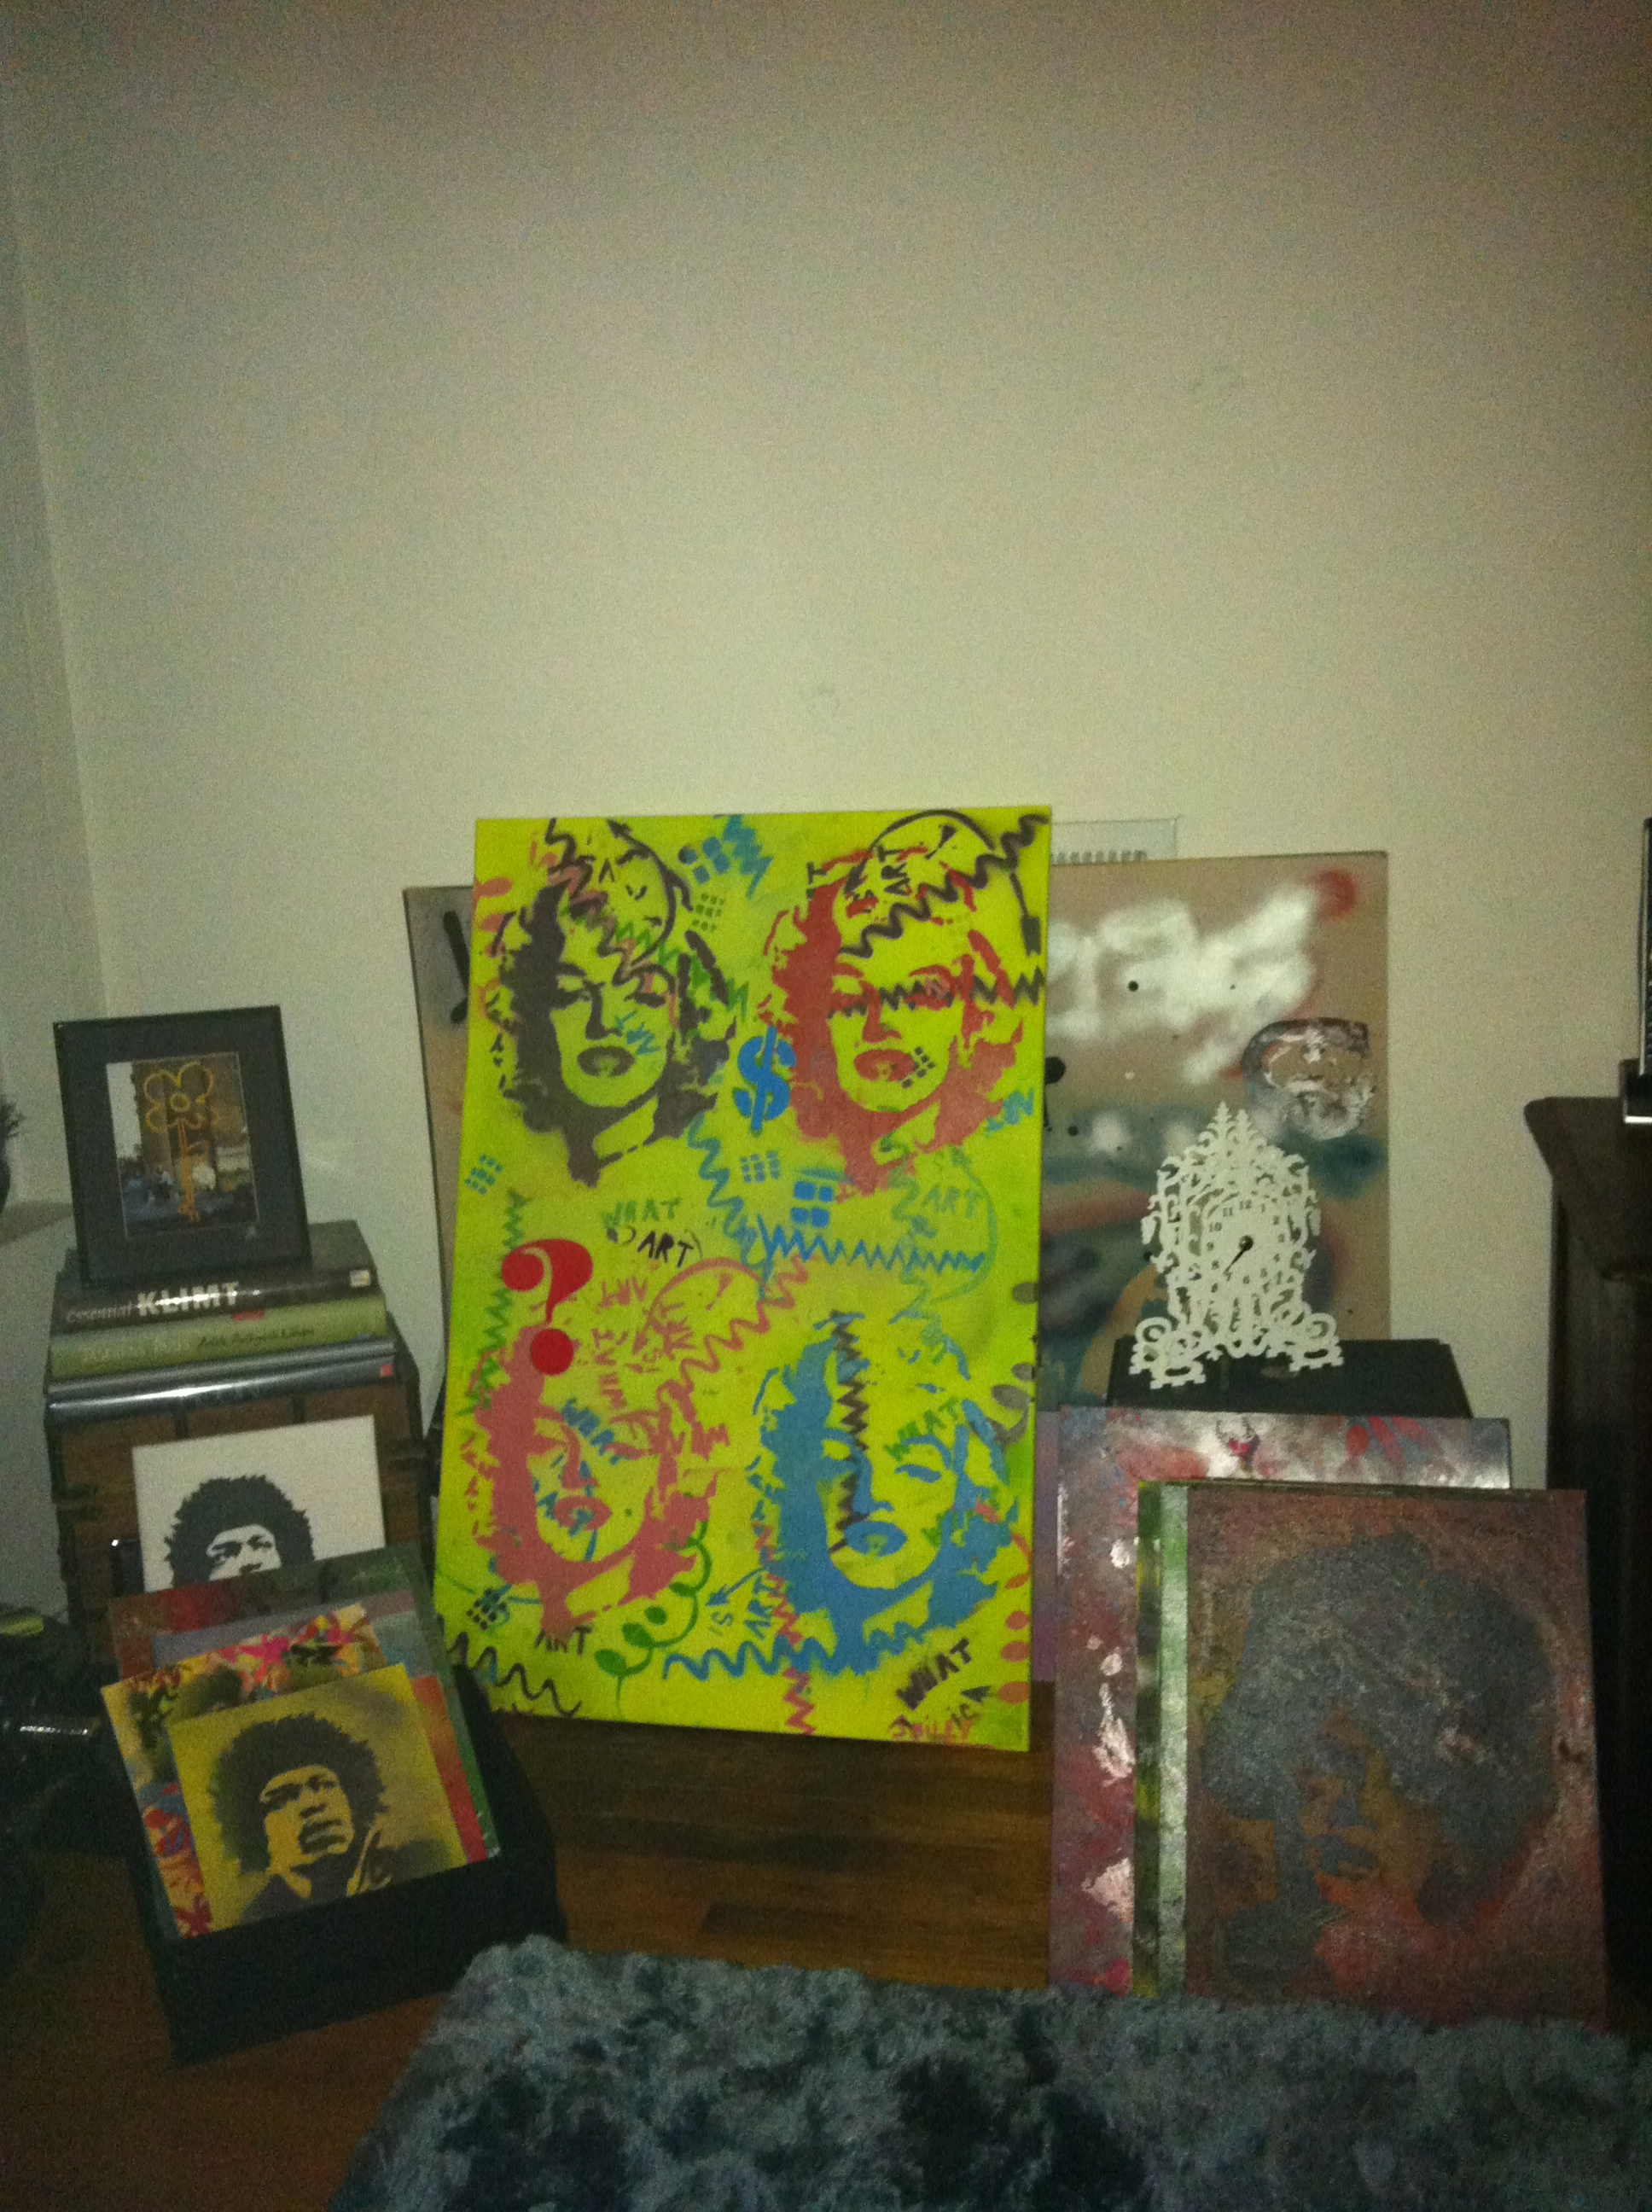 Marilyn Monroe, Jimmy Hendrix, Brigitte Bardot and Banksy